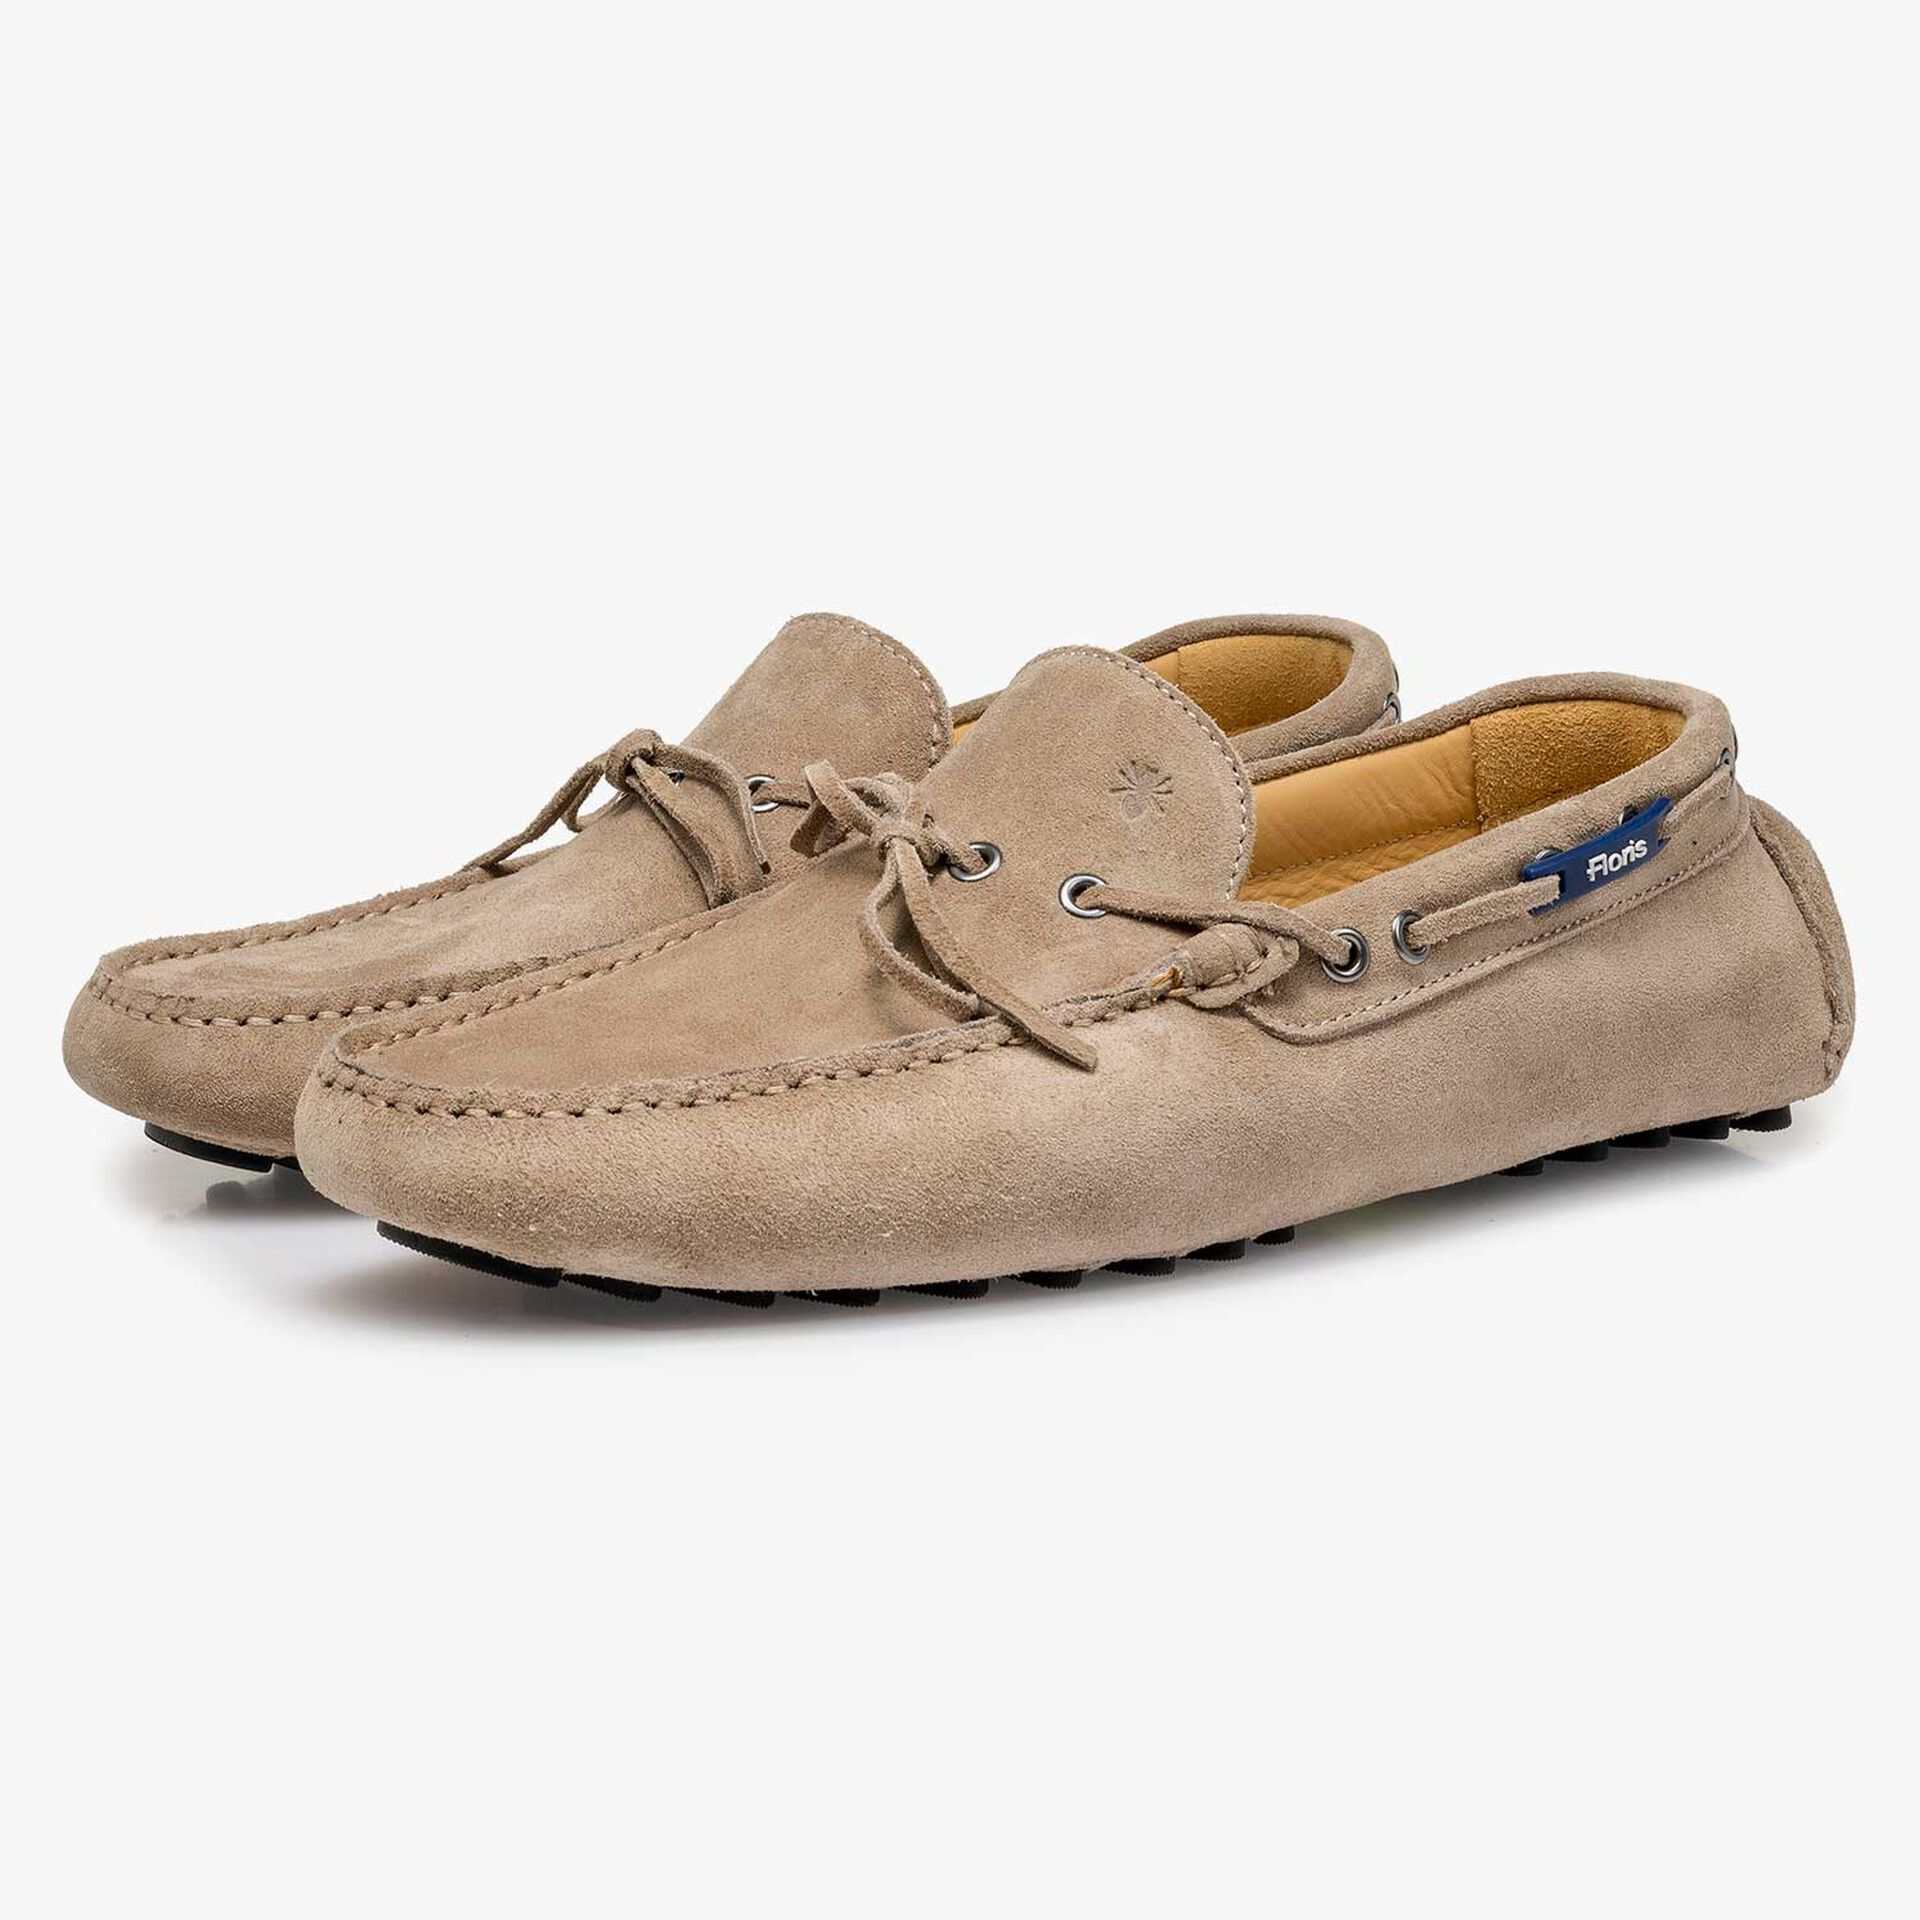 Taupe-coloured calf suede leather moccasin